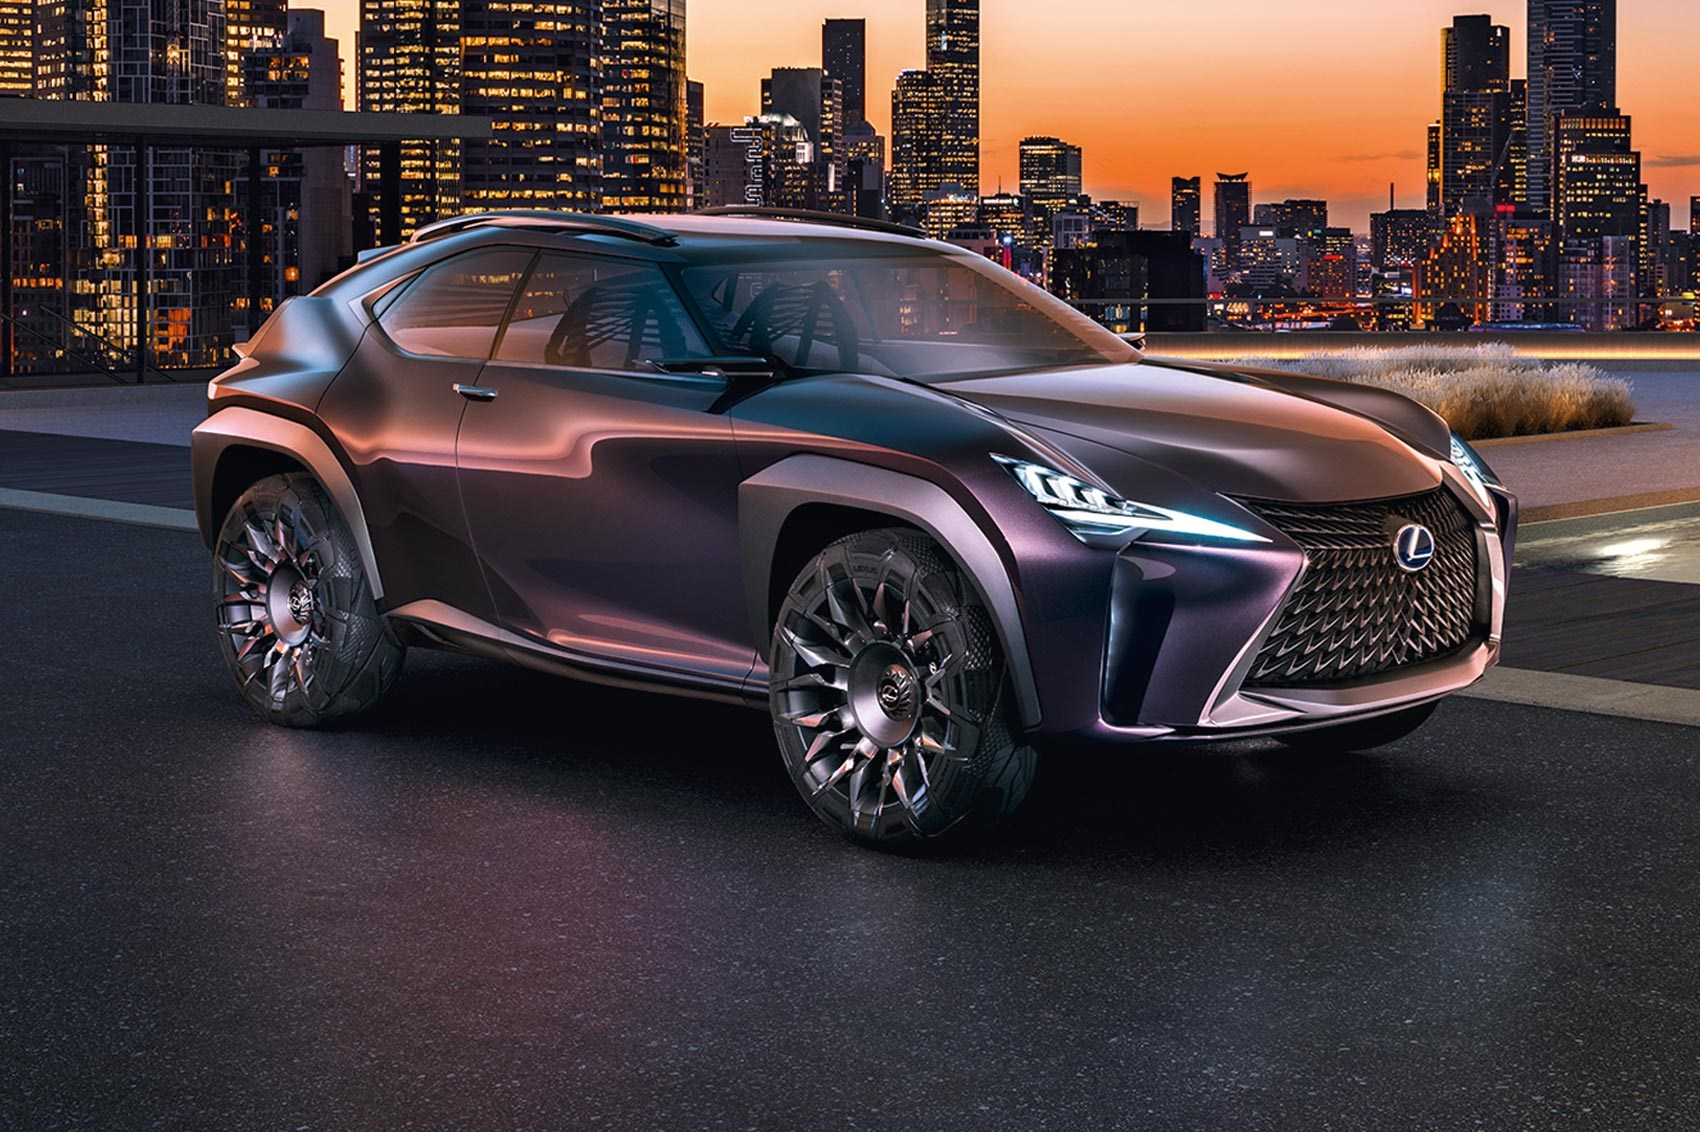 French fancy: Lexus UX crossover concept revealed by CAR ...